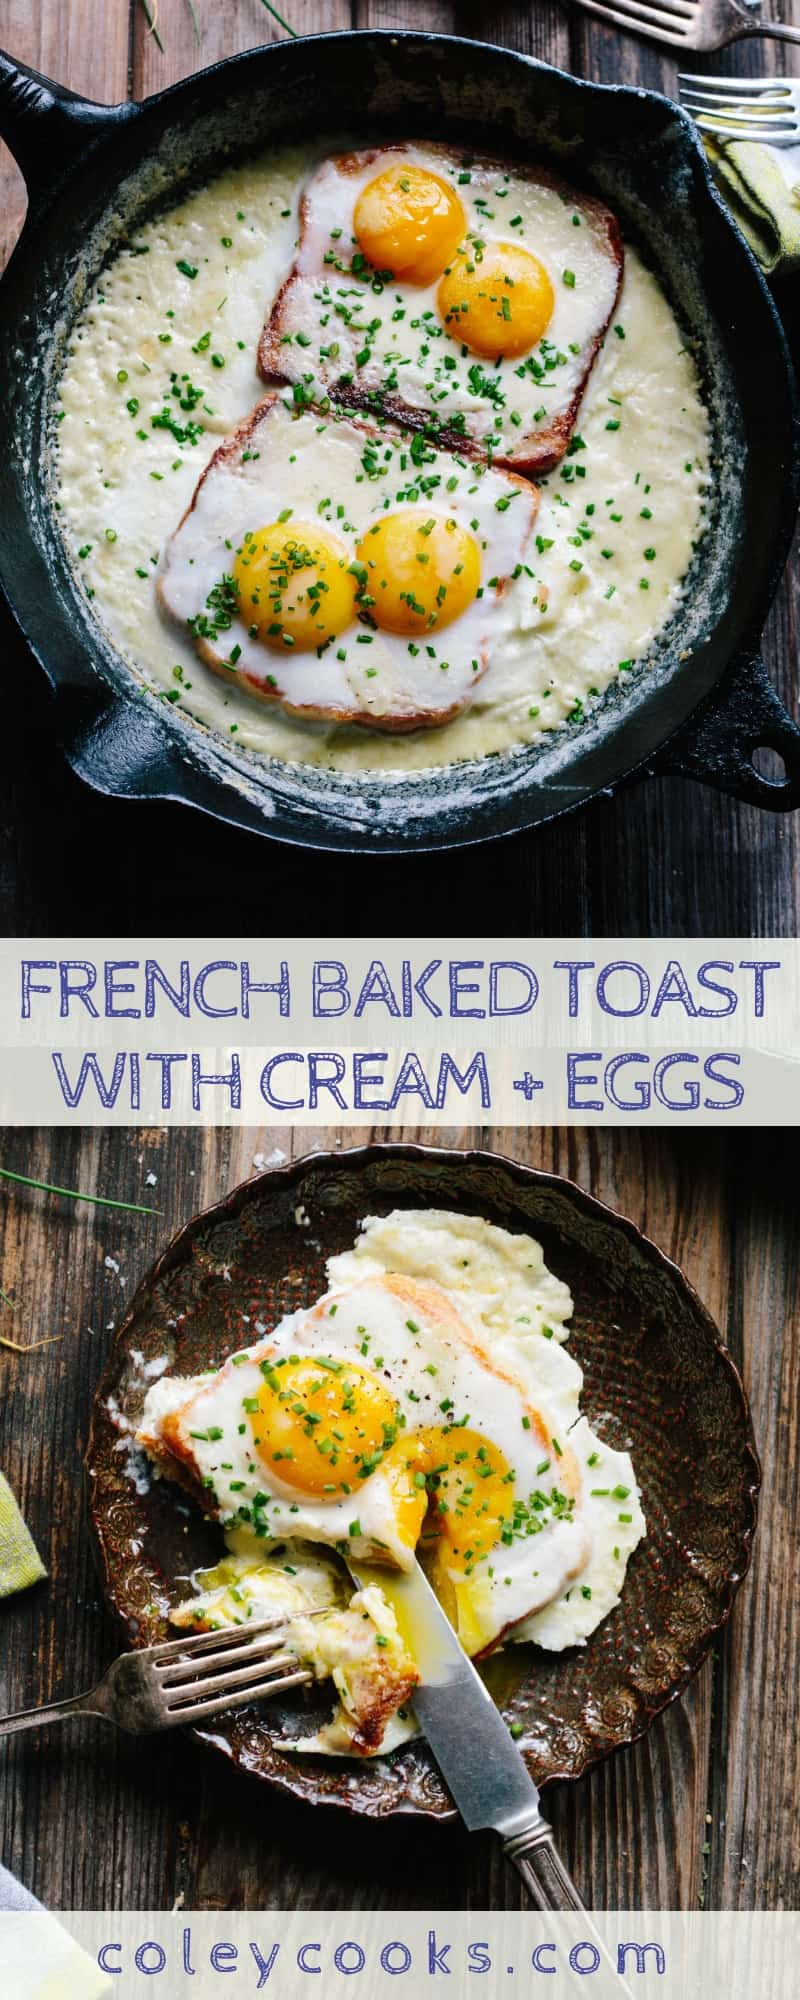 FRENCH BAKED TOAST WITH CREAM + EGGS | Easy + Impressive French Breakfast. Rich, decadent, satisfying buttery toast baked with cream and topped with eggs. amazing! #french #toast #breakfast #brunch #eggs #recipe | ColeyCooks.com